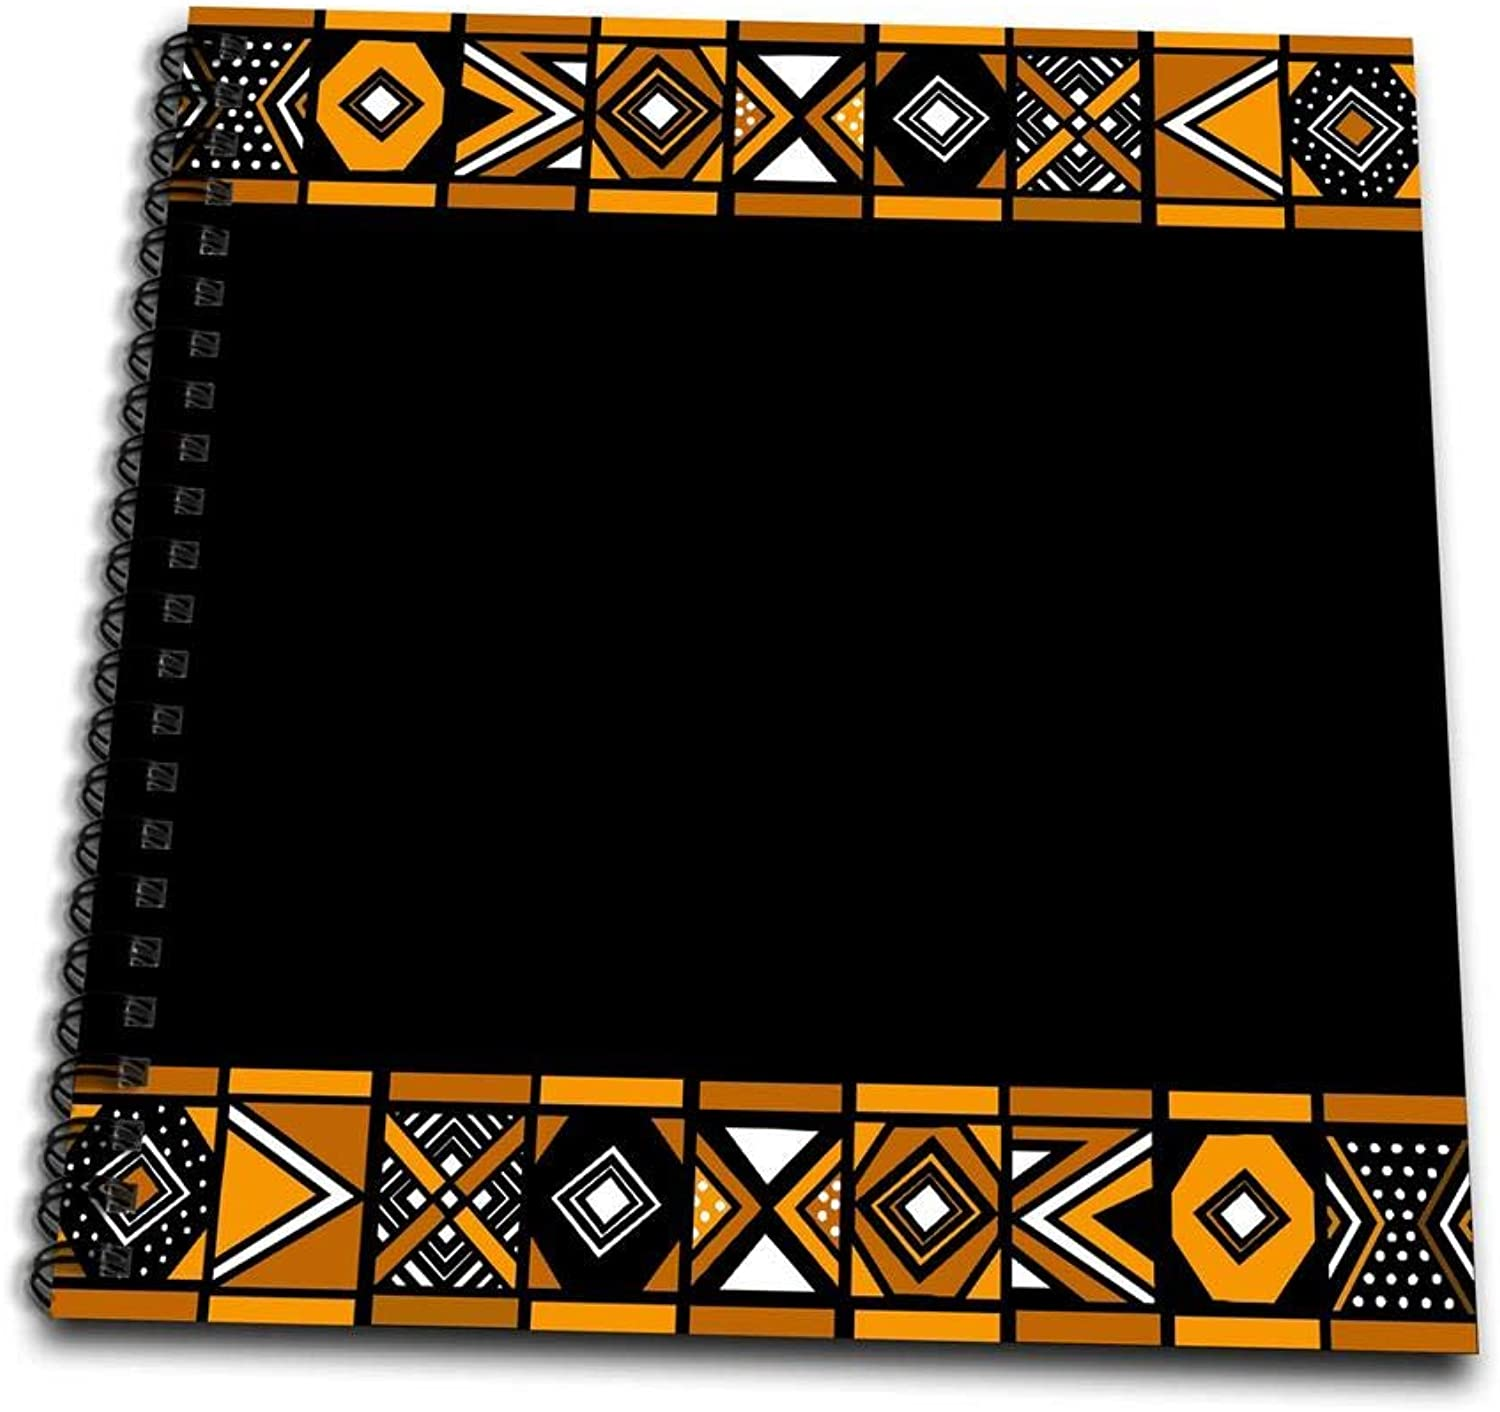 3dpink db_76556_2 Brown & Black African Pattern Art of Africa in spired by Zulu Beadwork Geometric Designs Memory Book, 12 by 12